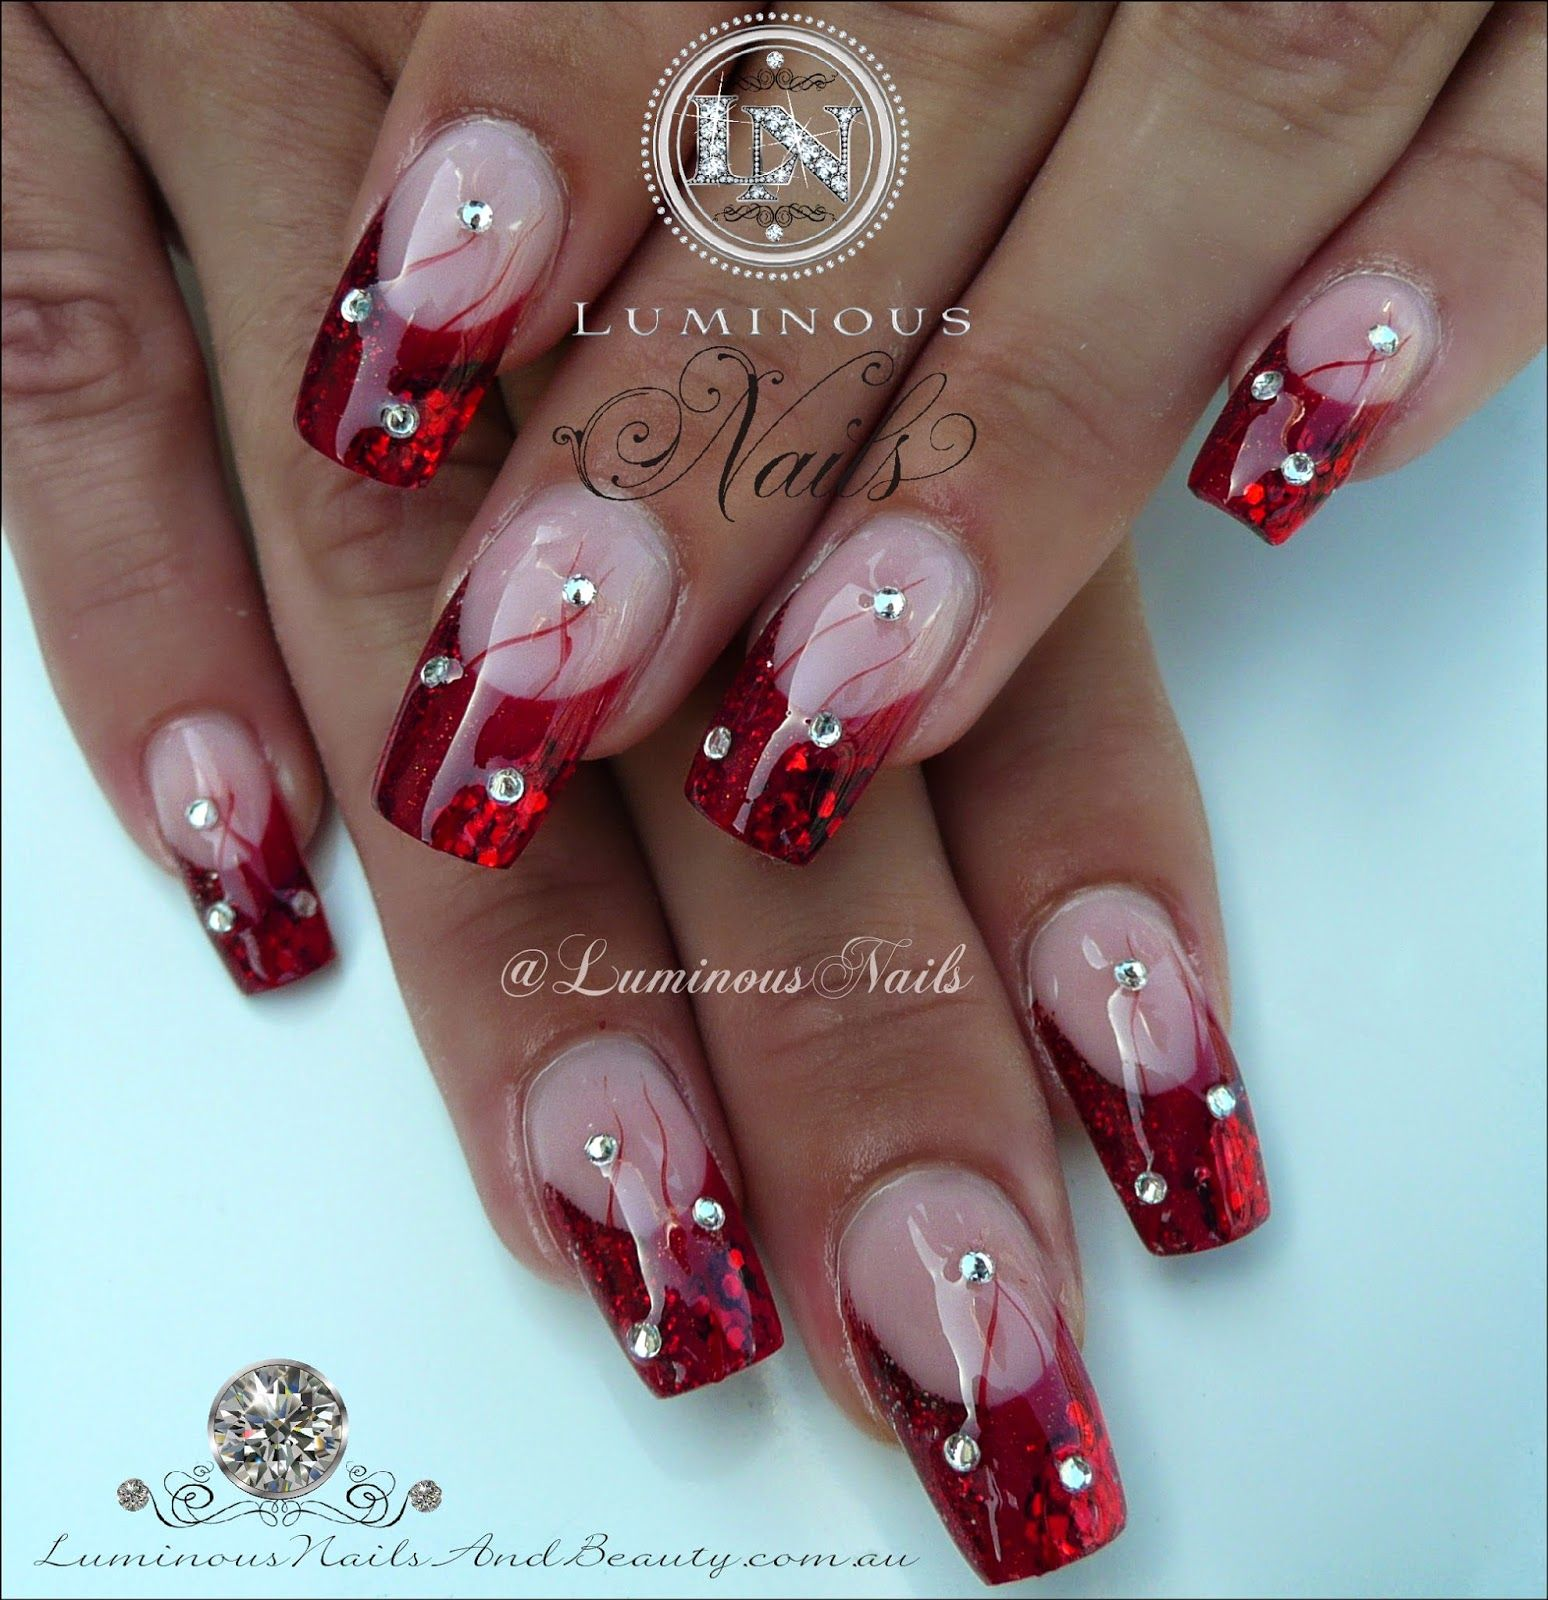 Luminous Nails: Scarlet Red Acrylic Glitter Nails | nails ...